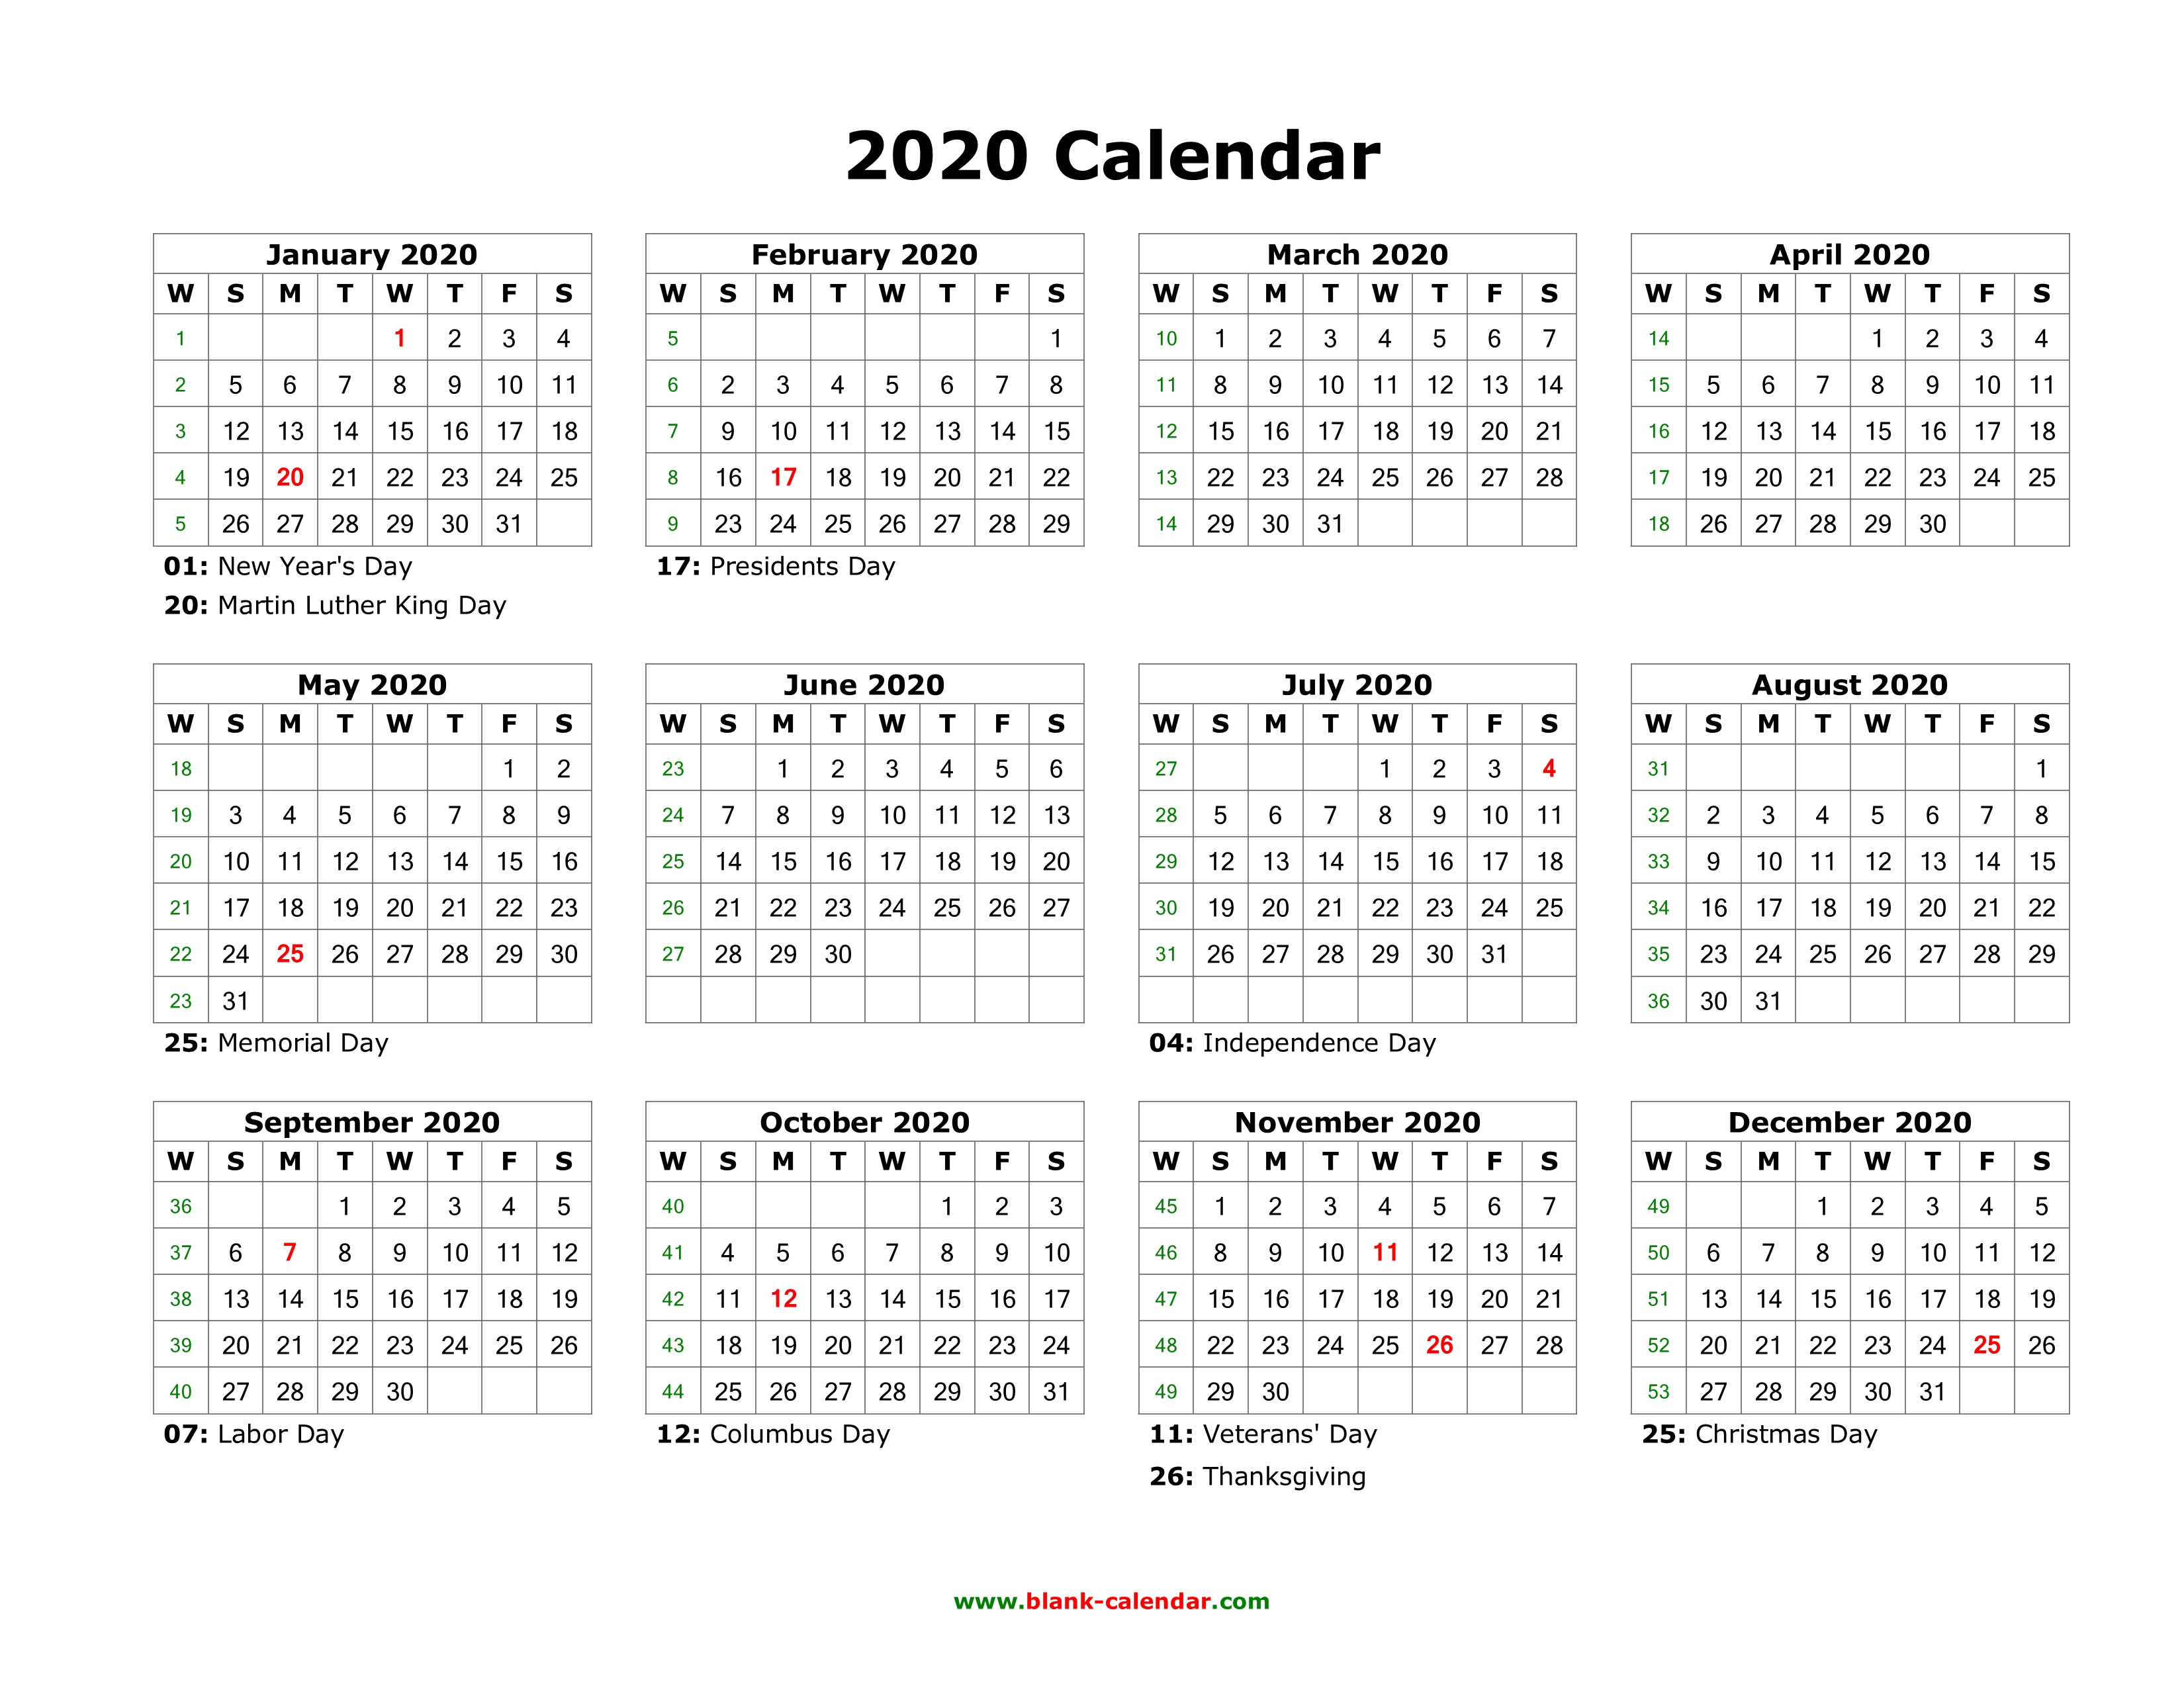 Blank Calendar 2020 | Free Download Calendar Templates with regard to Free Printable Calendar For 2020 With No Download